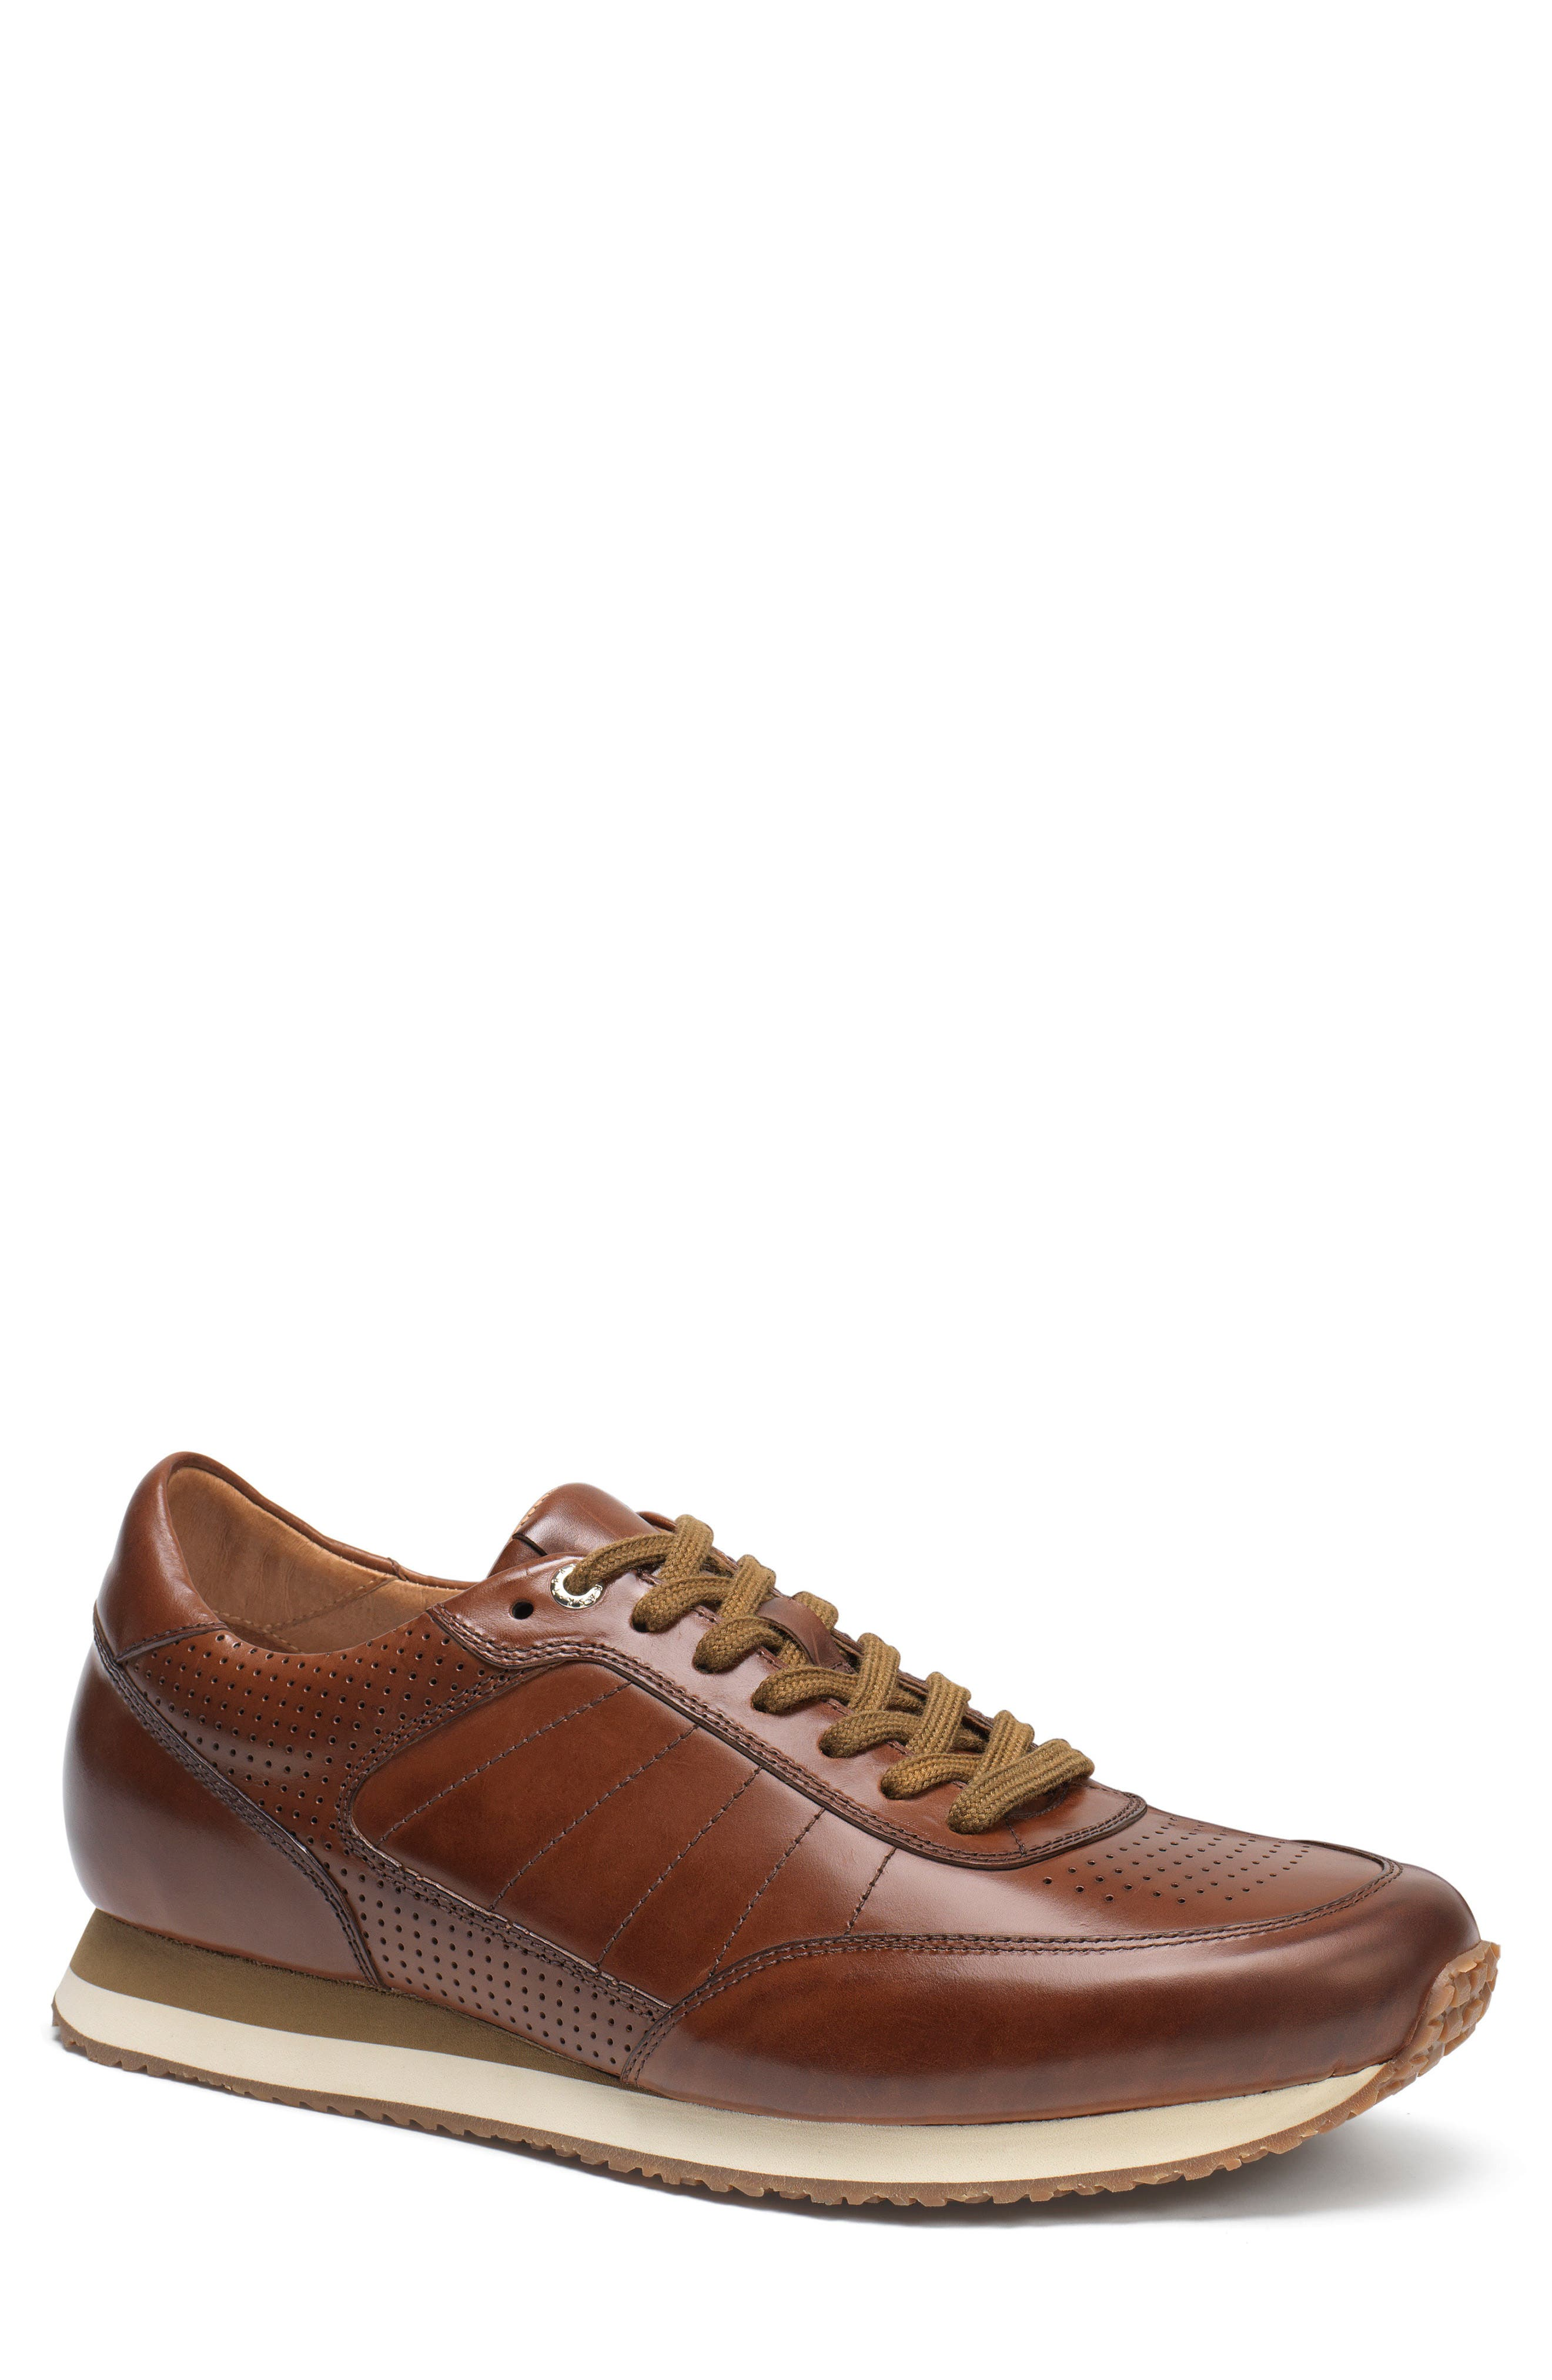 TRASK Aiden Sneaker, Main, color, BROWN LEATHER